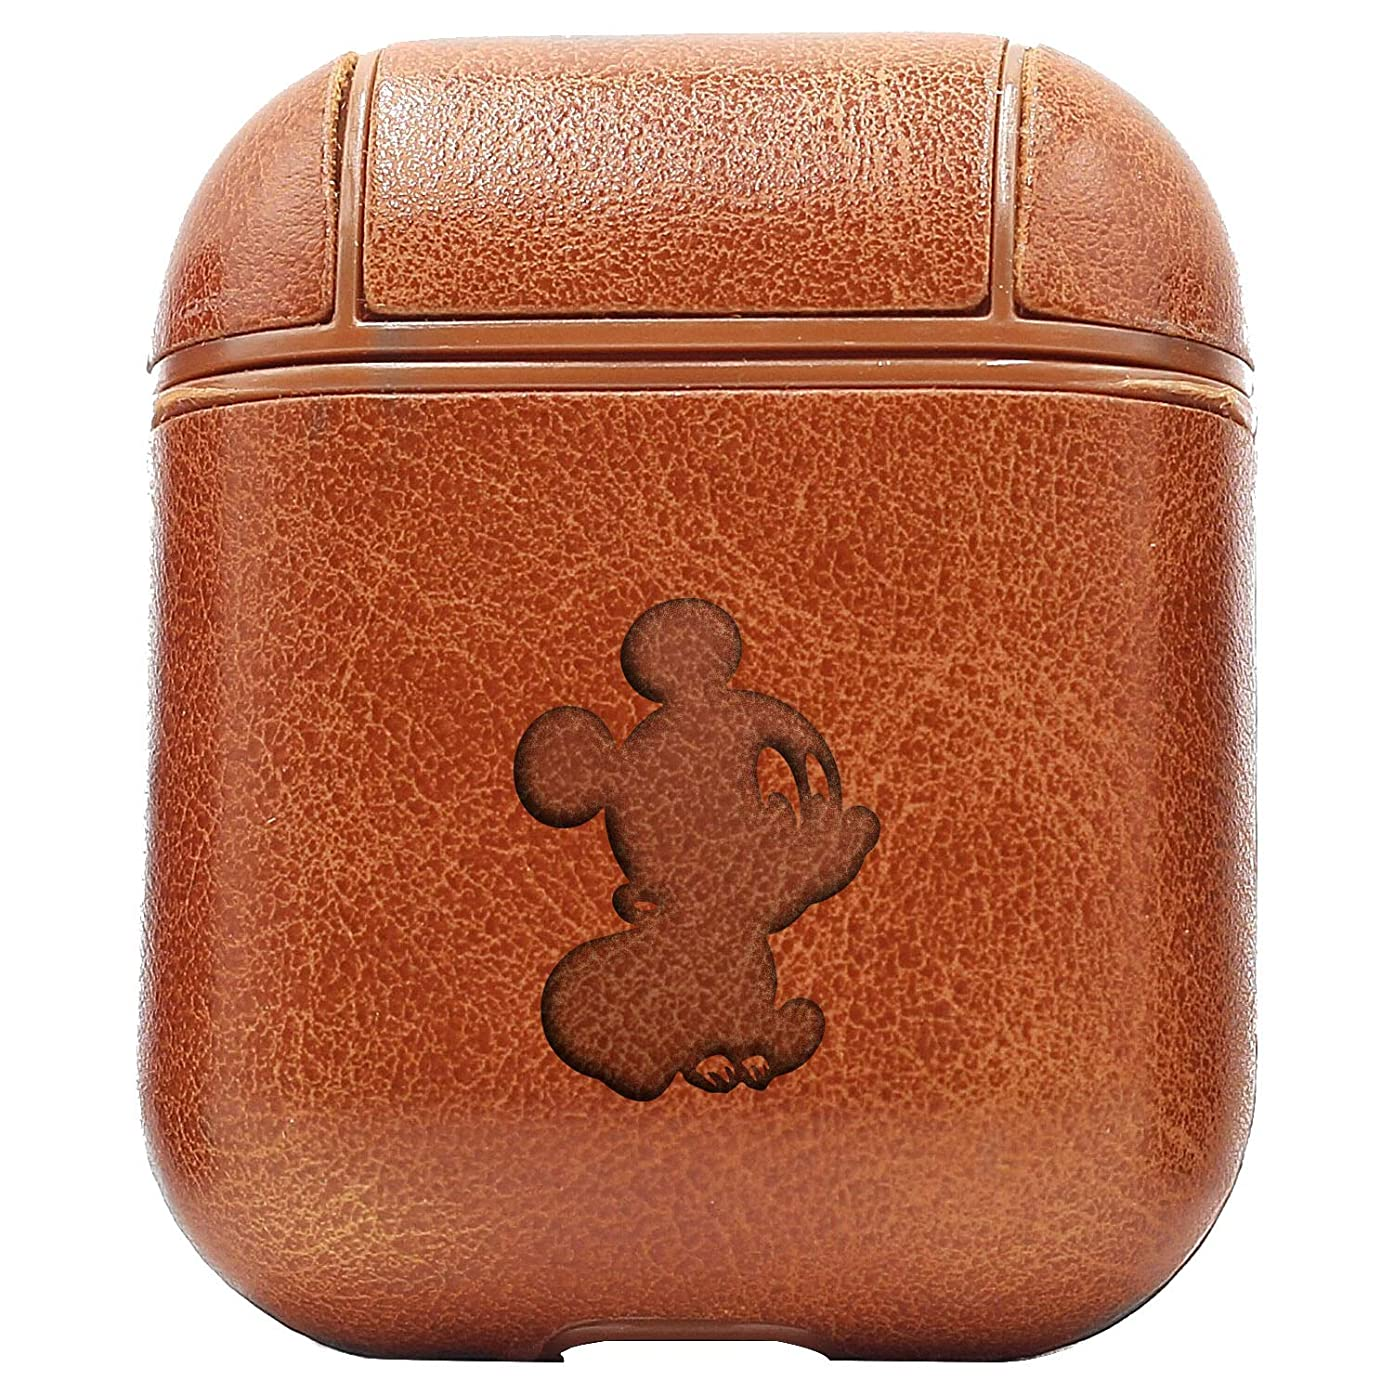 Baby Mickey Mouse and Minnie Cartoon Films 2 (Vintage Brown) Engraved Air Pods Leather Case - a New Class of Luxury to Your AirPods - Premium PU Leather and Handmade exquisitely by Master Craftsmen